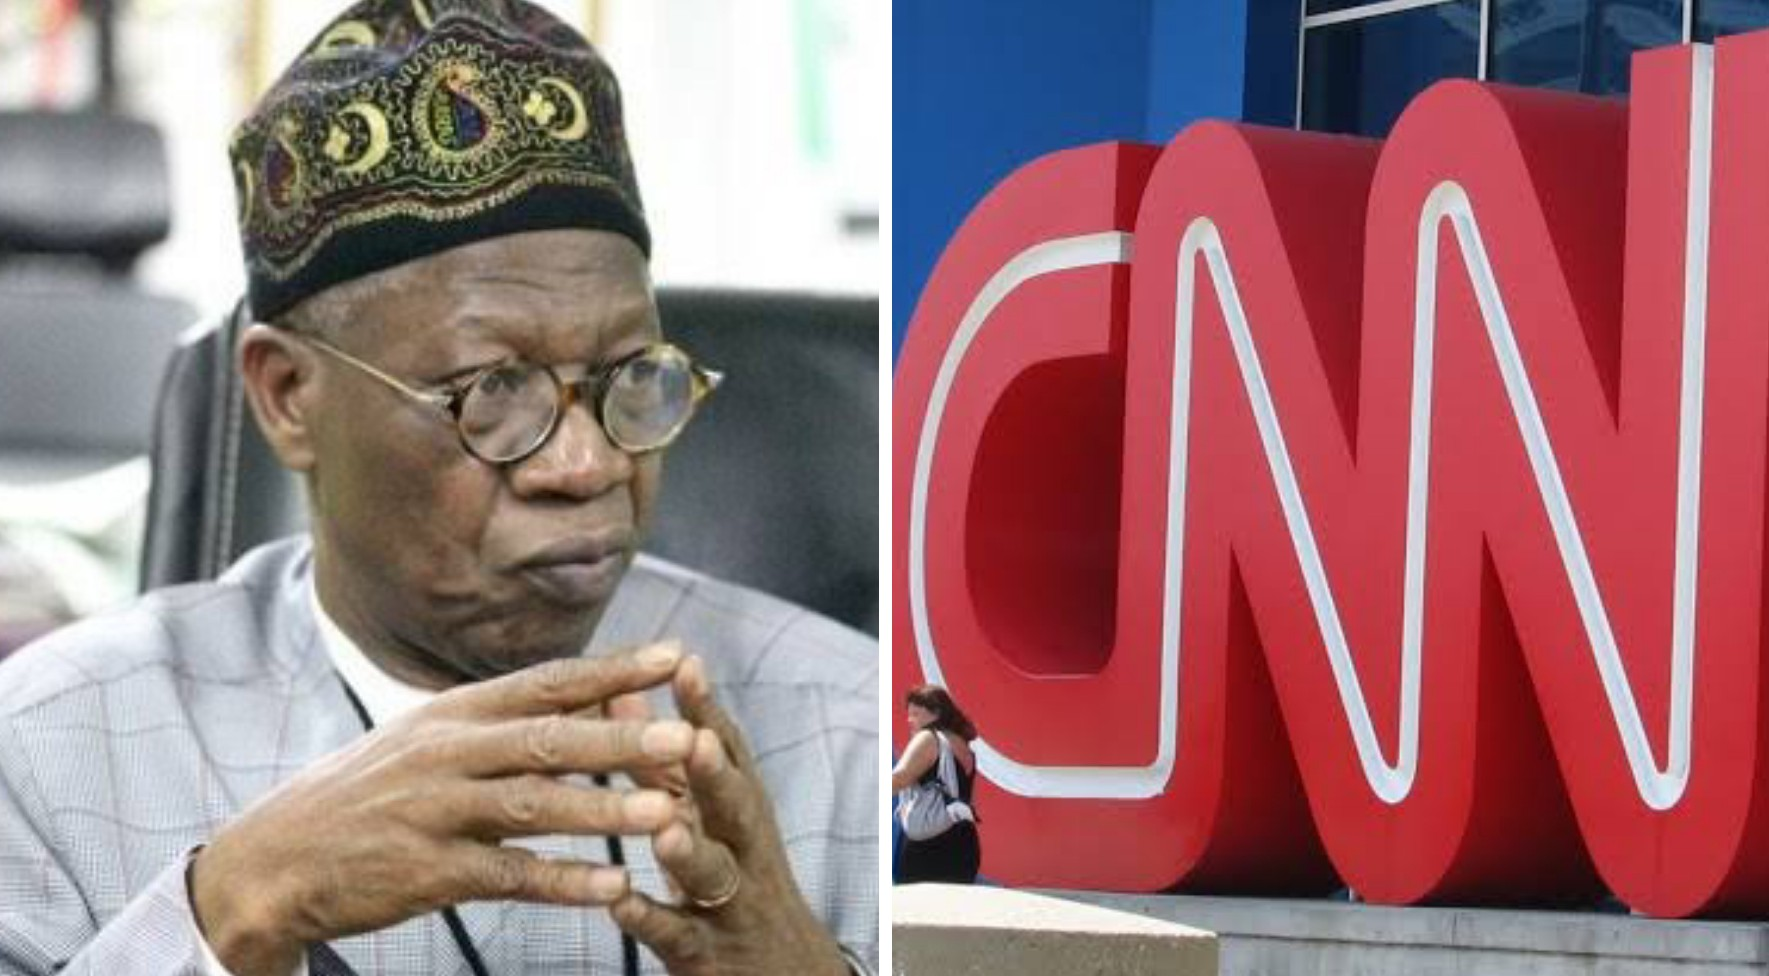 Lekki shootings: New report shows CNN is desperate, says Lai Mohammed